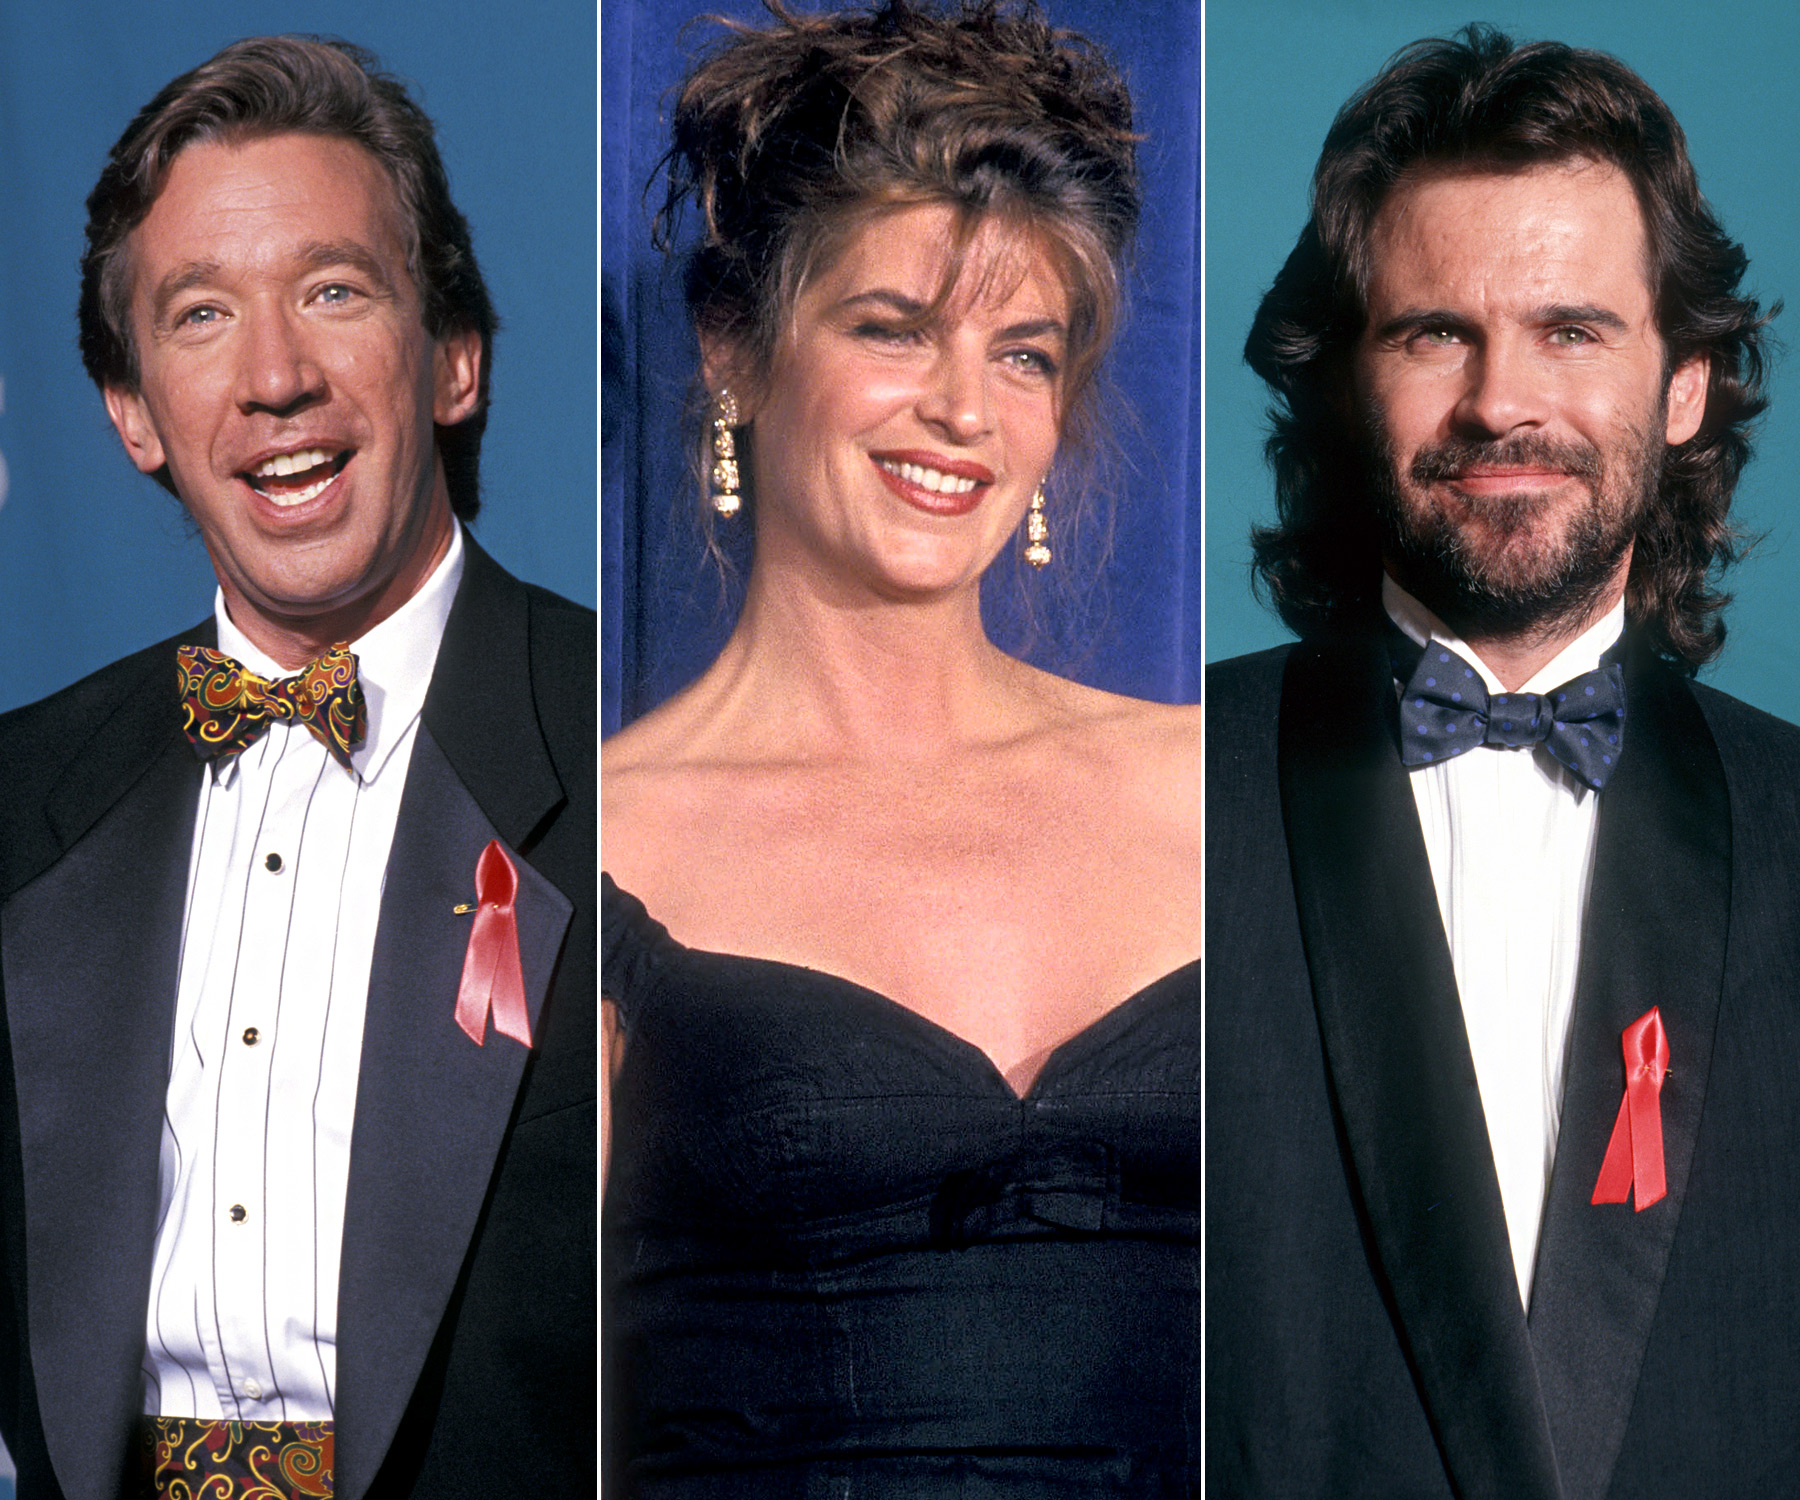 Prior to his Home Improvement wife Patricia Richardson's turn at the Emmys, Allen hosted in 1992 alongside Alley (then in her Cheers heyday) and Miller, who had hosted the show the year prior.